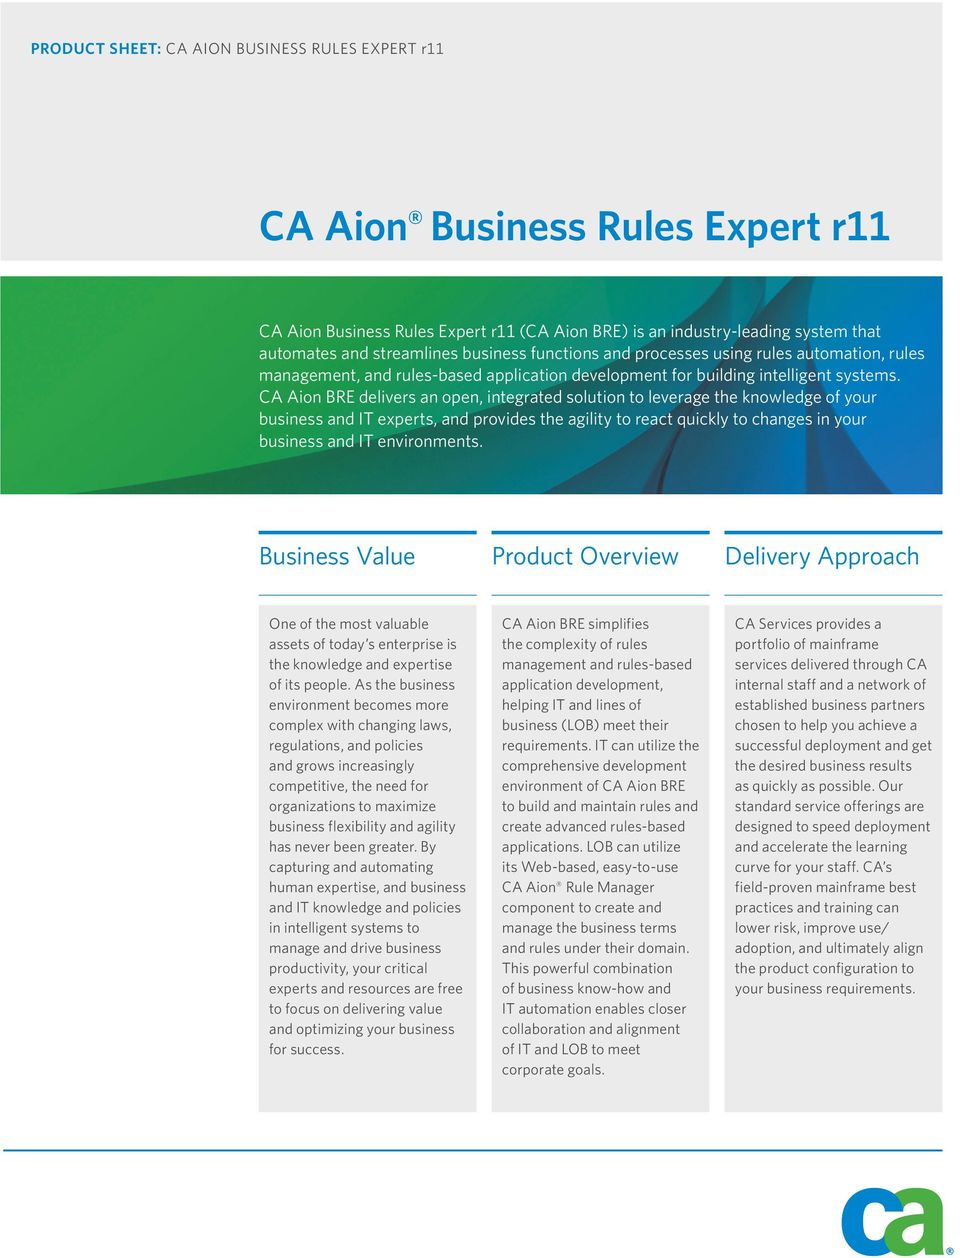 CA Aion BRE delivers an open, integrated solution to leverage the knowledge of your business and IT experts, and provides the agility to react quickly to changes in your business and IT environments.